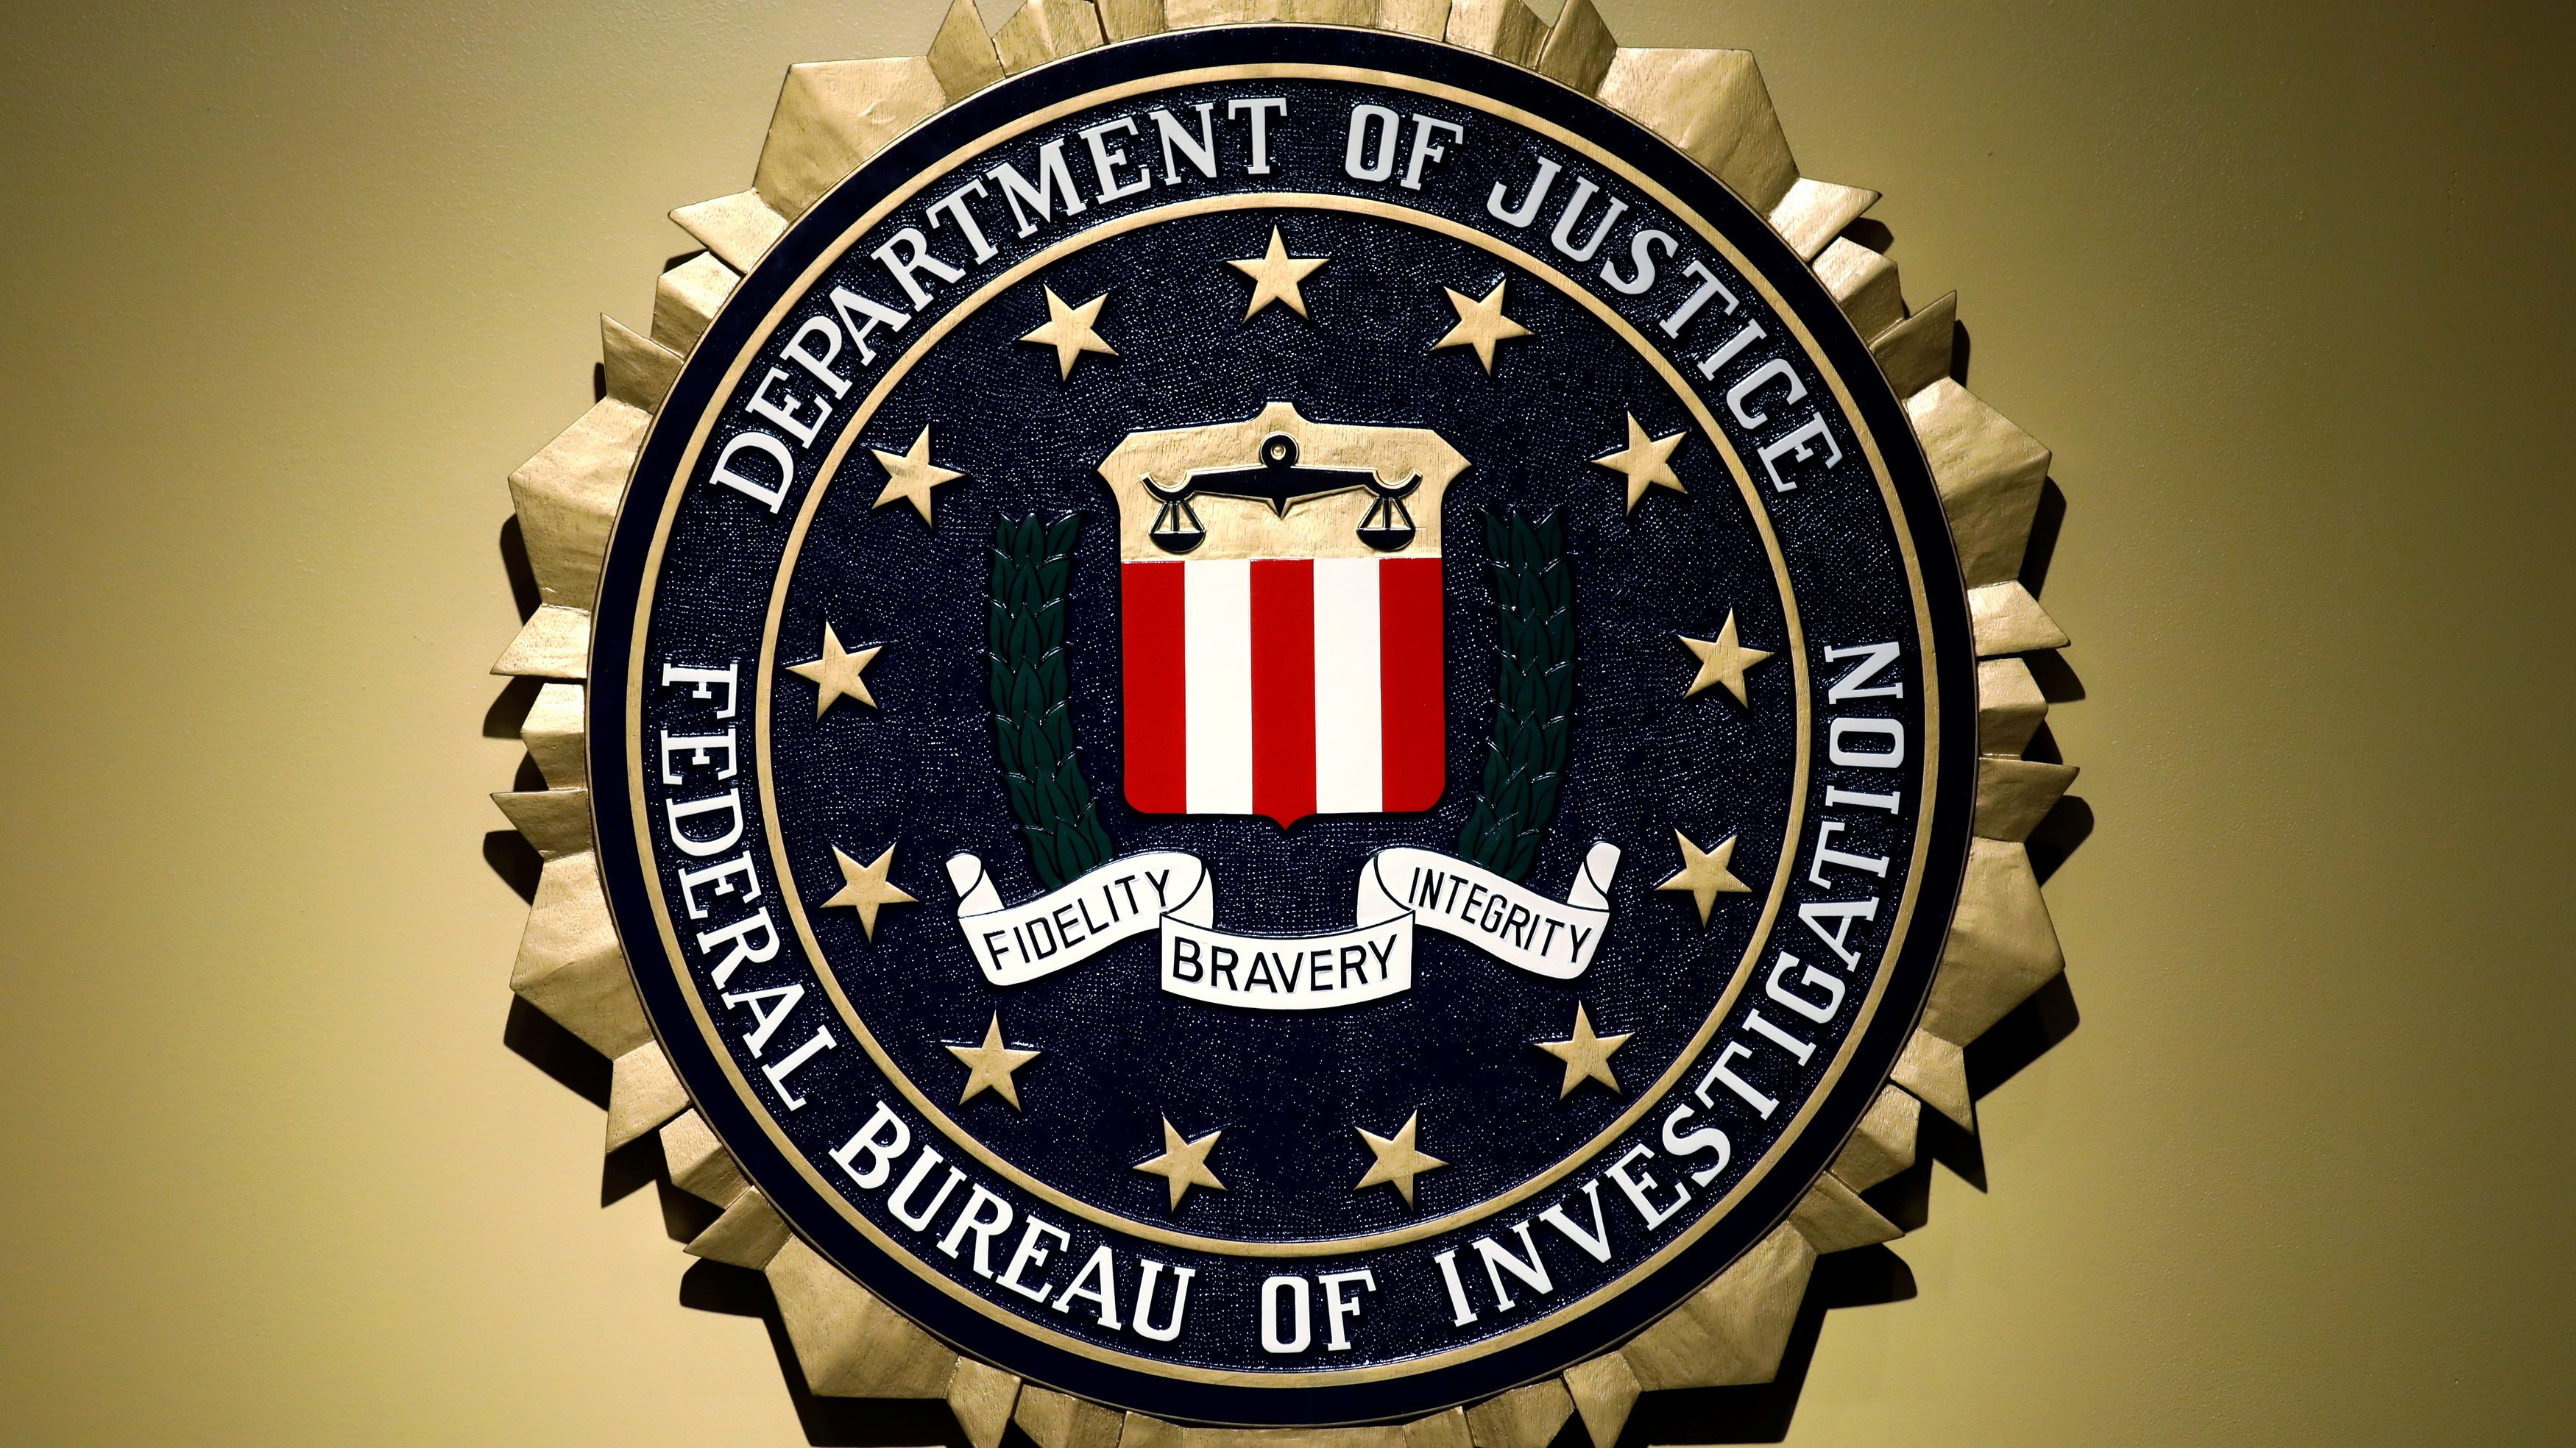 The Federal Bureau of Investigation seal